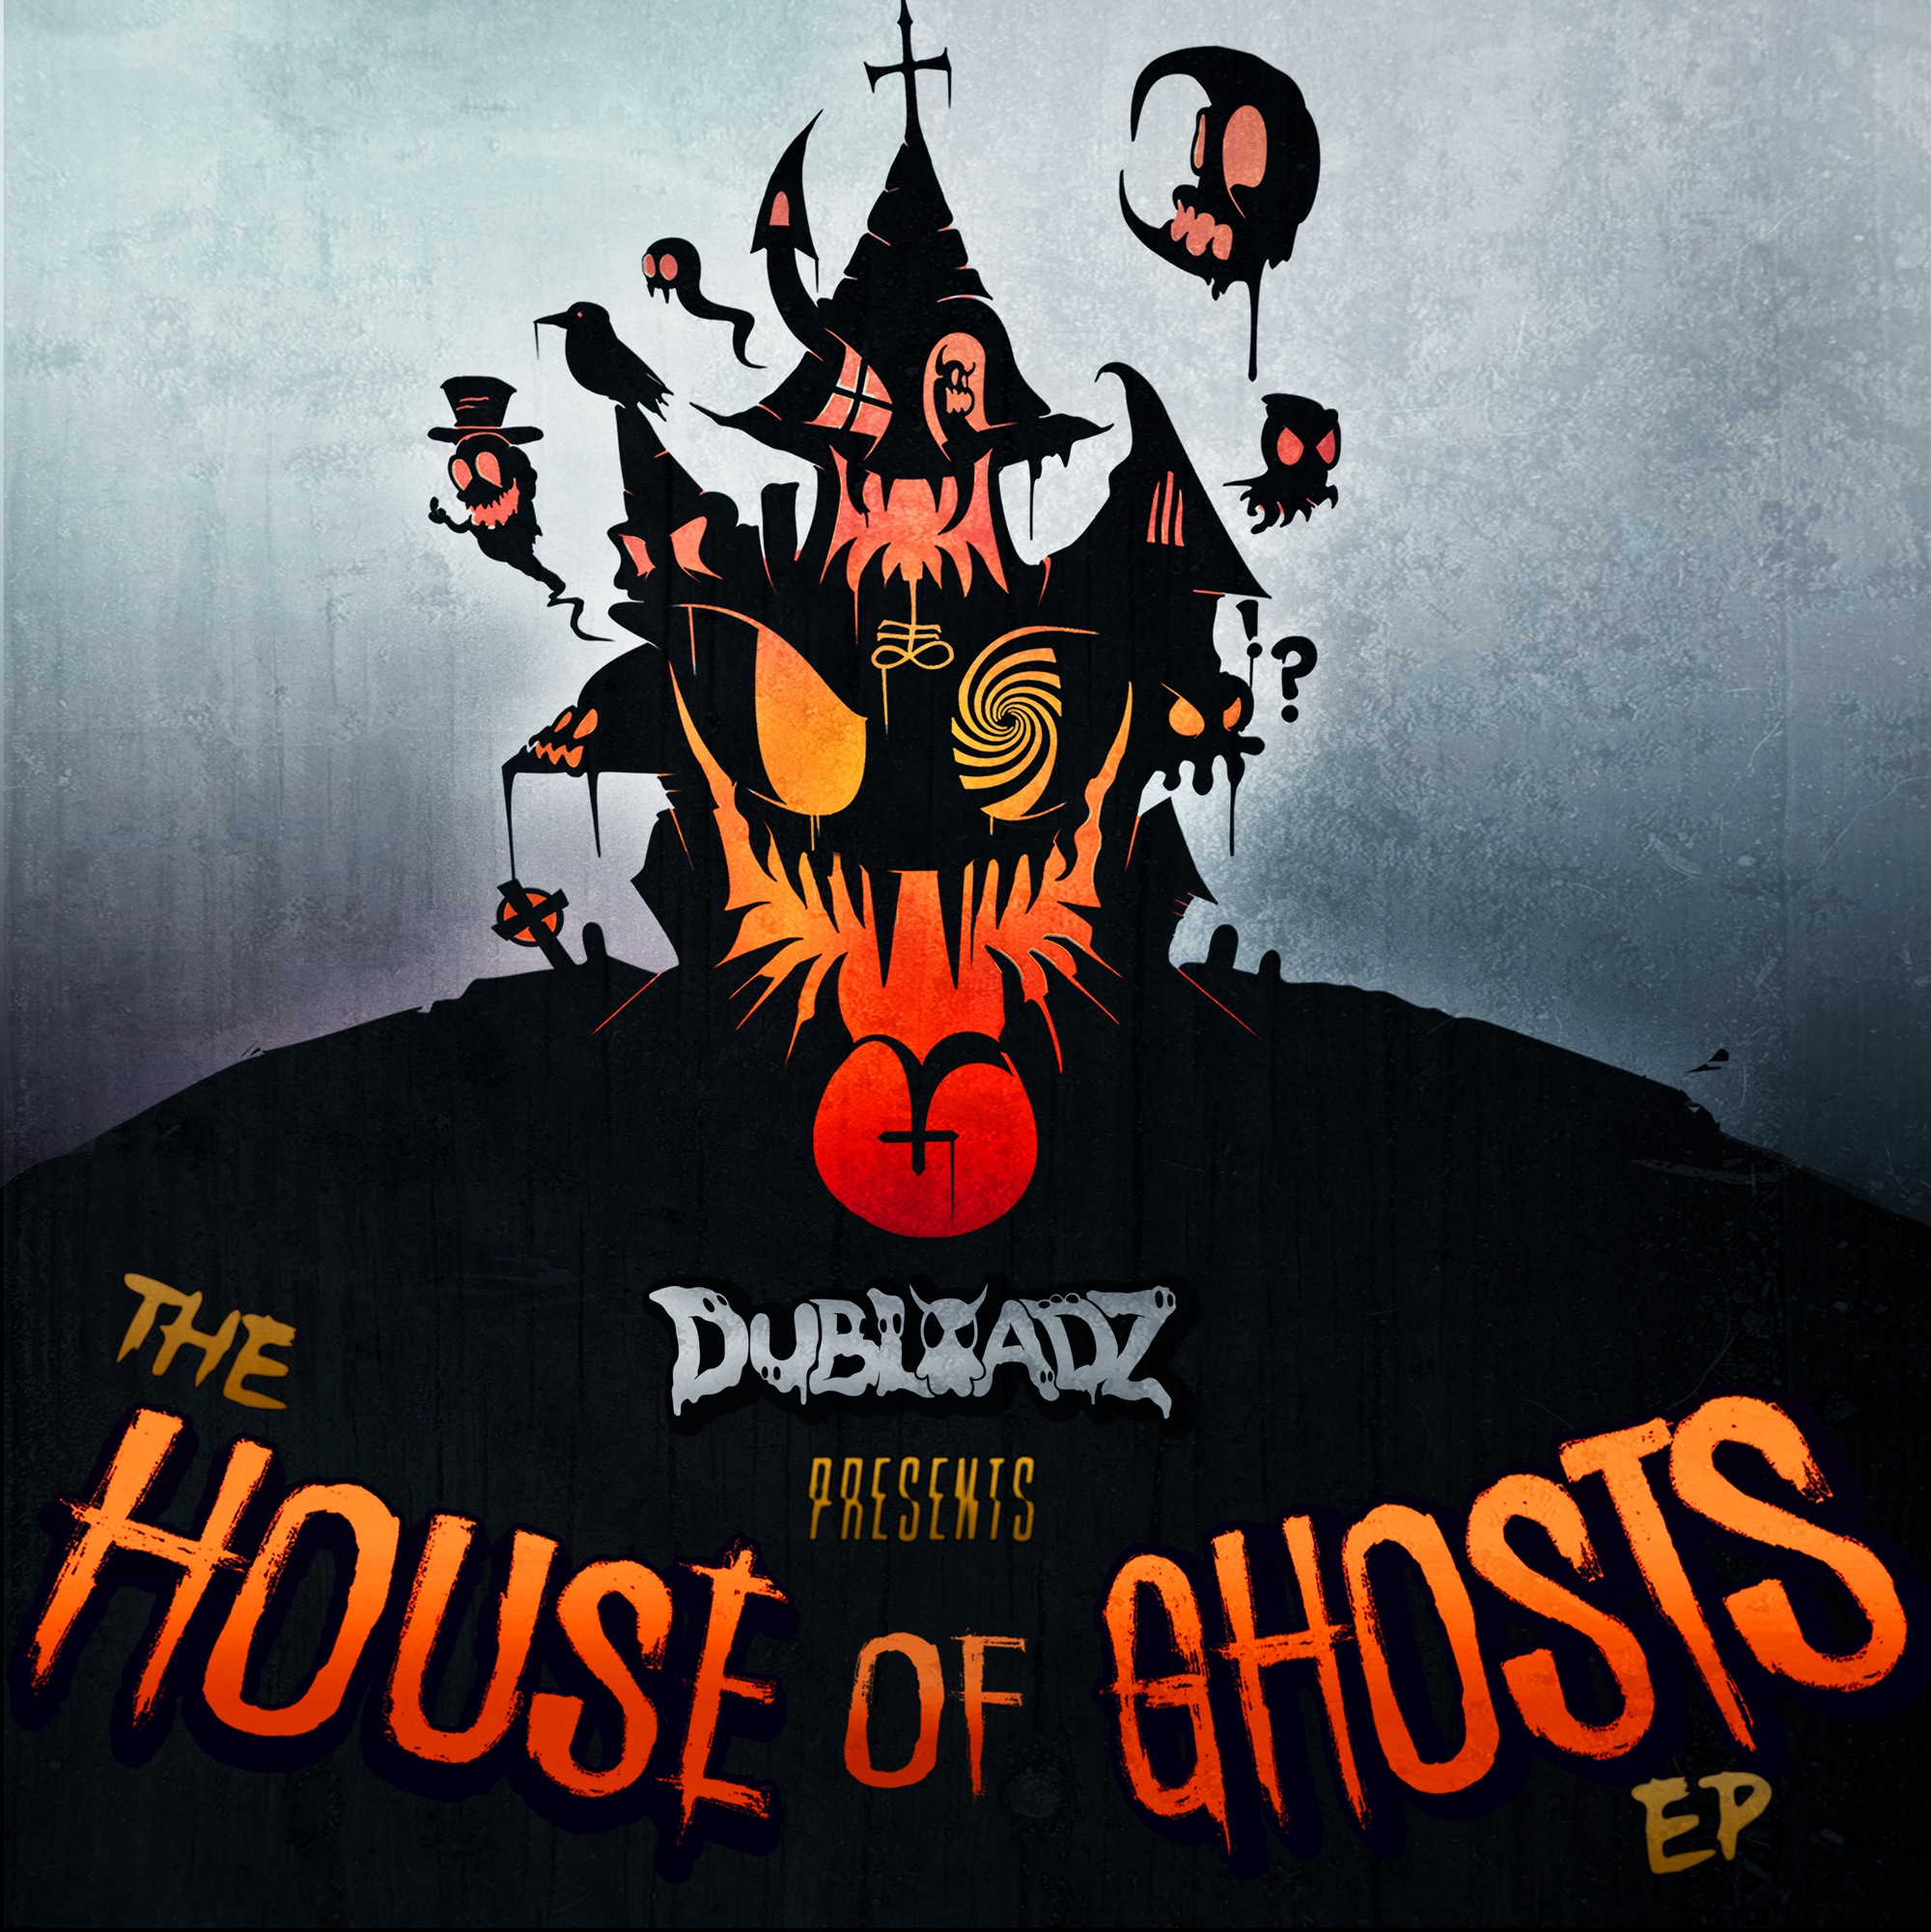 Dubloadz - House of Ghosts EP